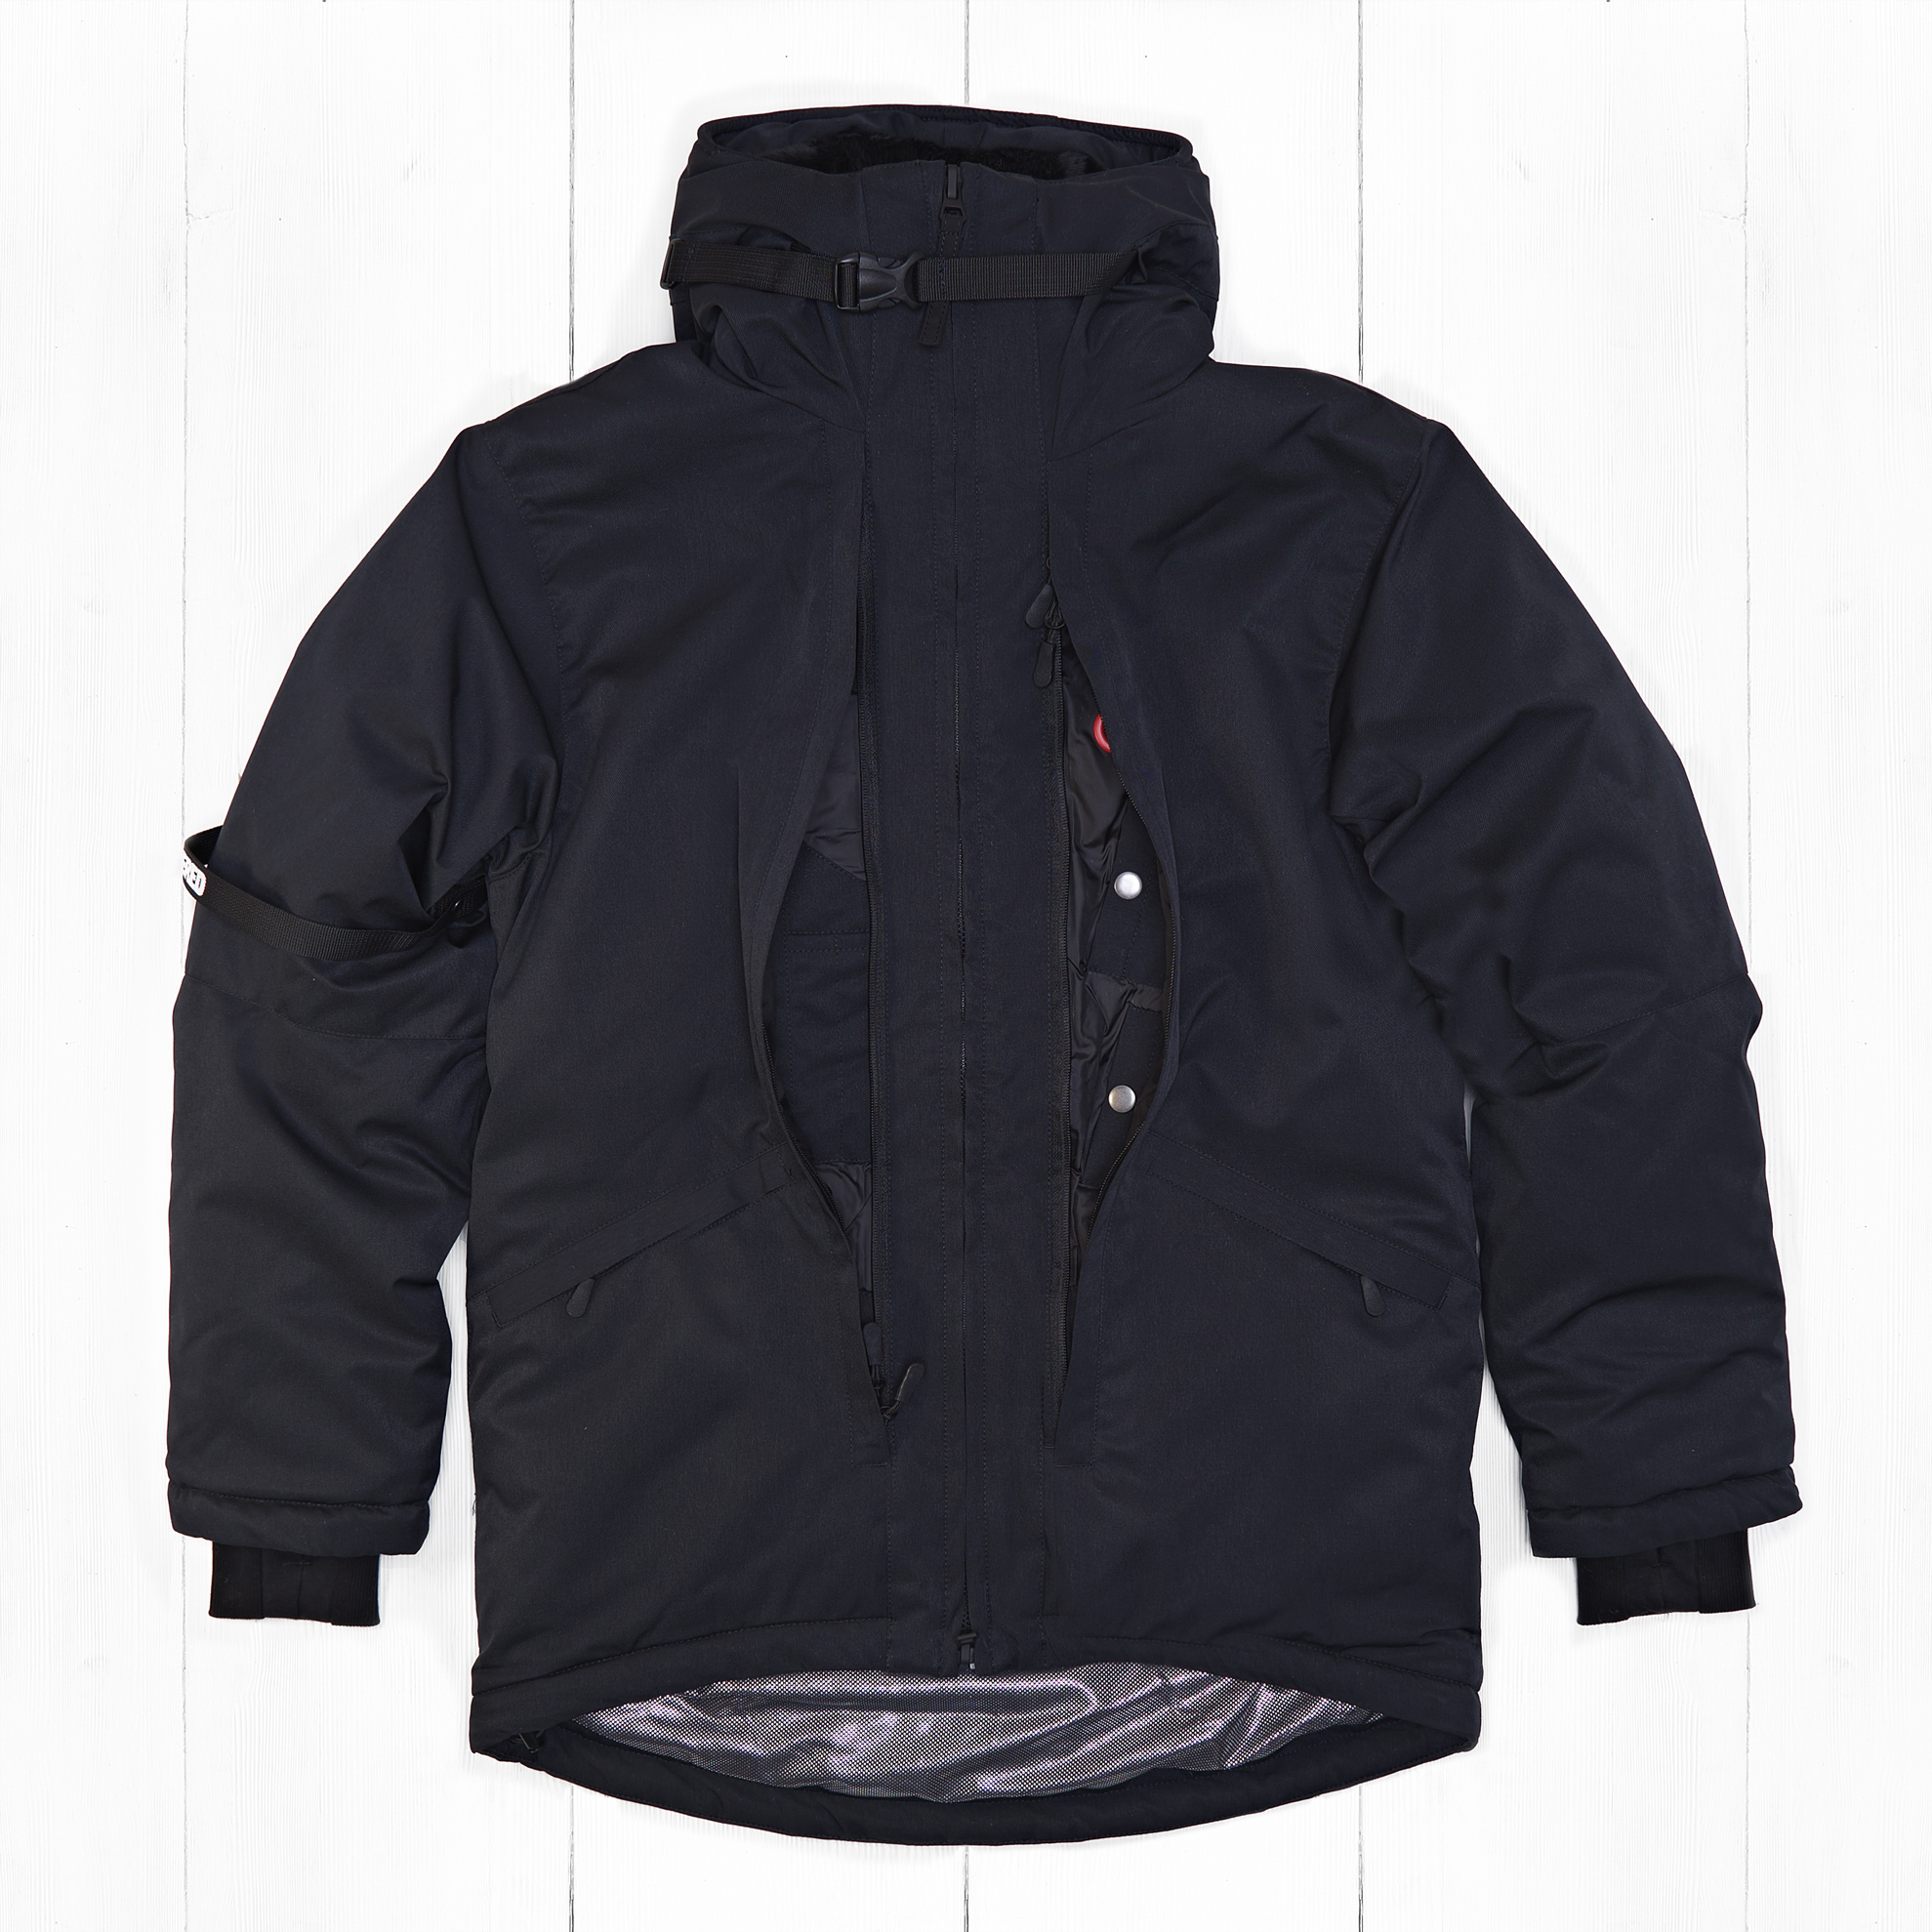 Куртка INNER CITY 2 COR Black Membrane